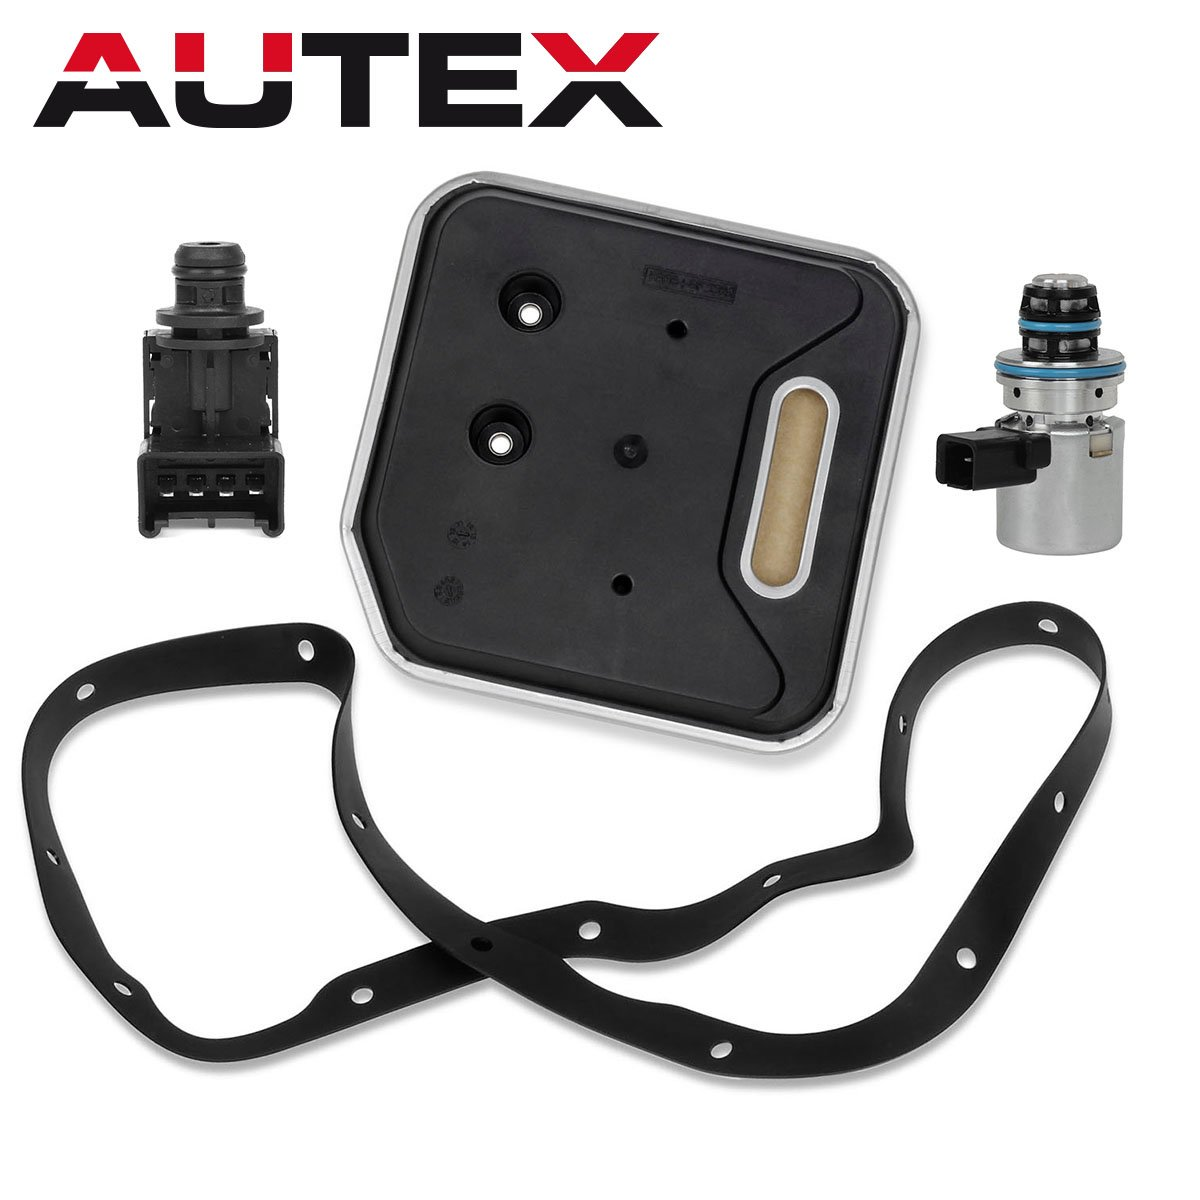 AUTEX A500 42RE 44RE Transmission Governor Pressure EPC Solenoid Filter Kit 4617210 56041403AA Compatible With Jeep/Dodge Dakota & Durango & Ram & Van 2000 up